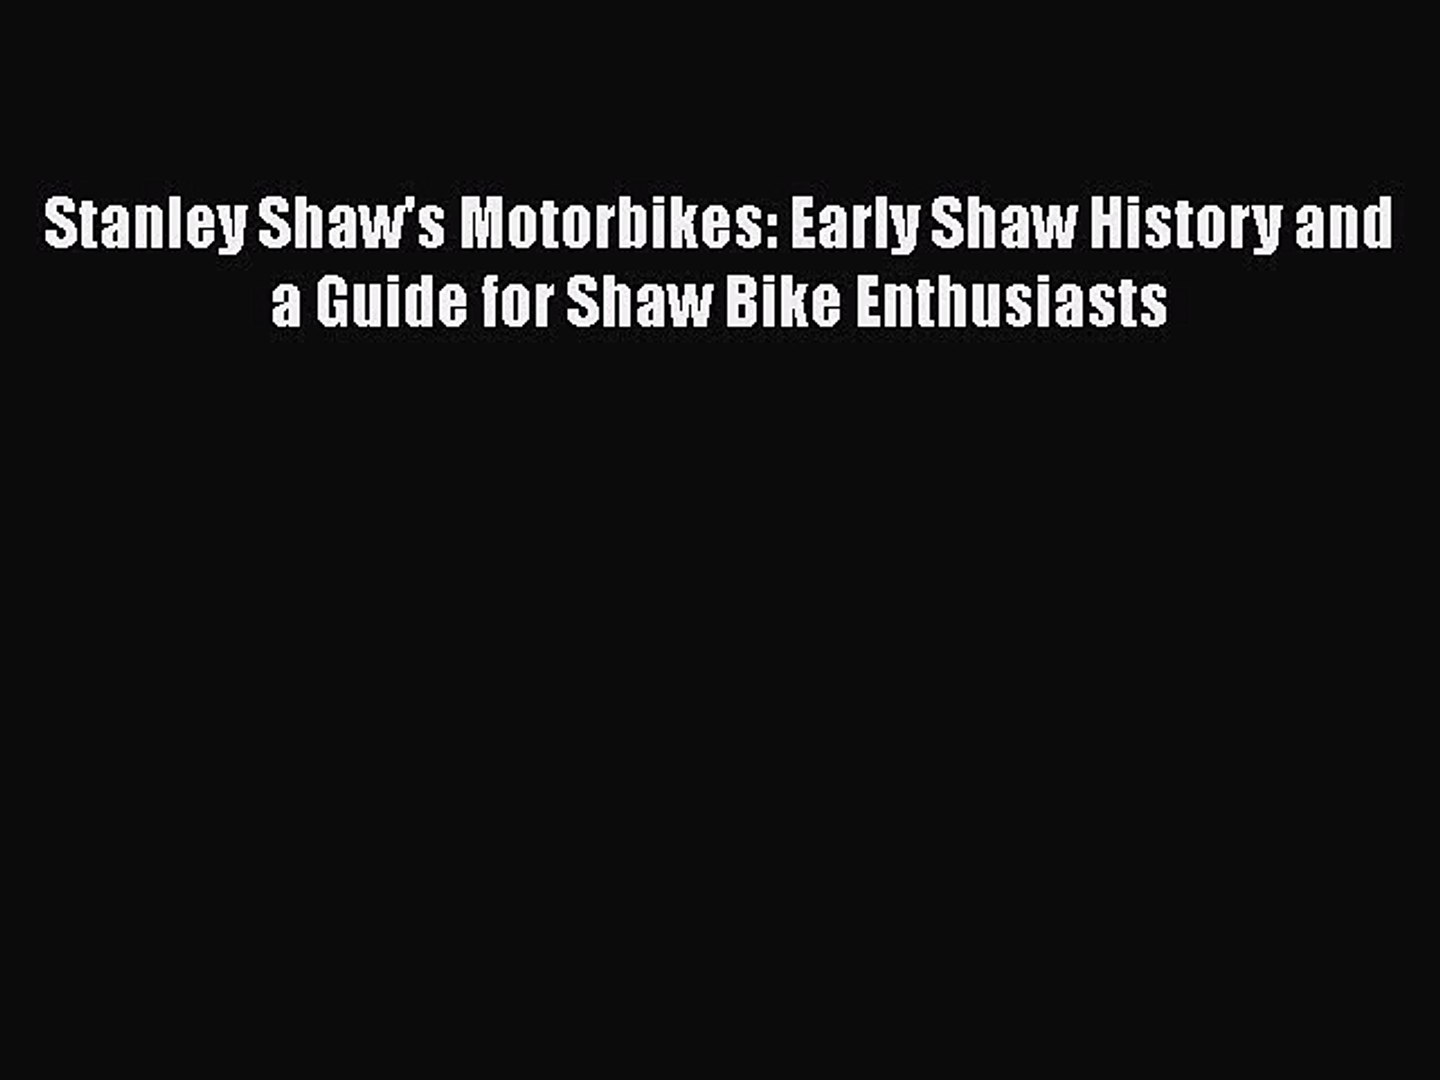 [Read Book] Stanley Shaw's Motorbikes: Early Shaw History and a Guide for Shaw Bike Enthusiasts